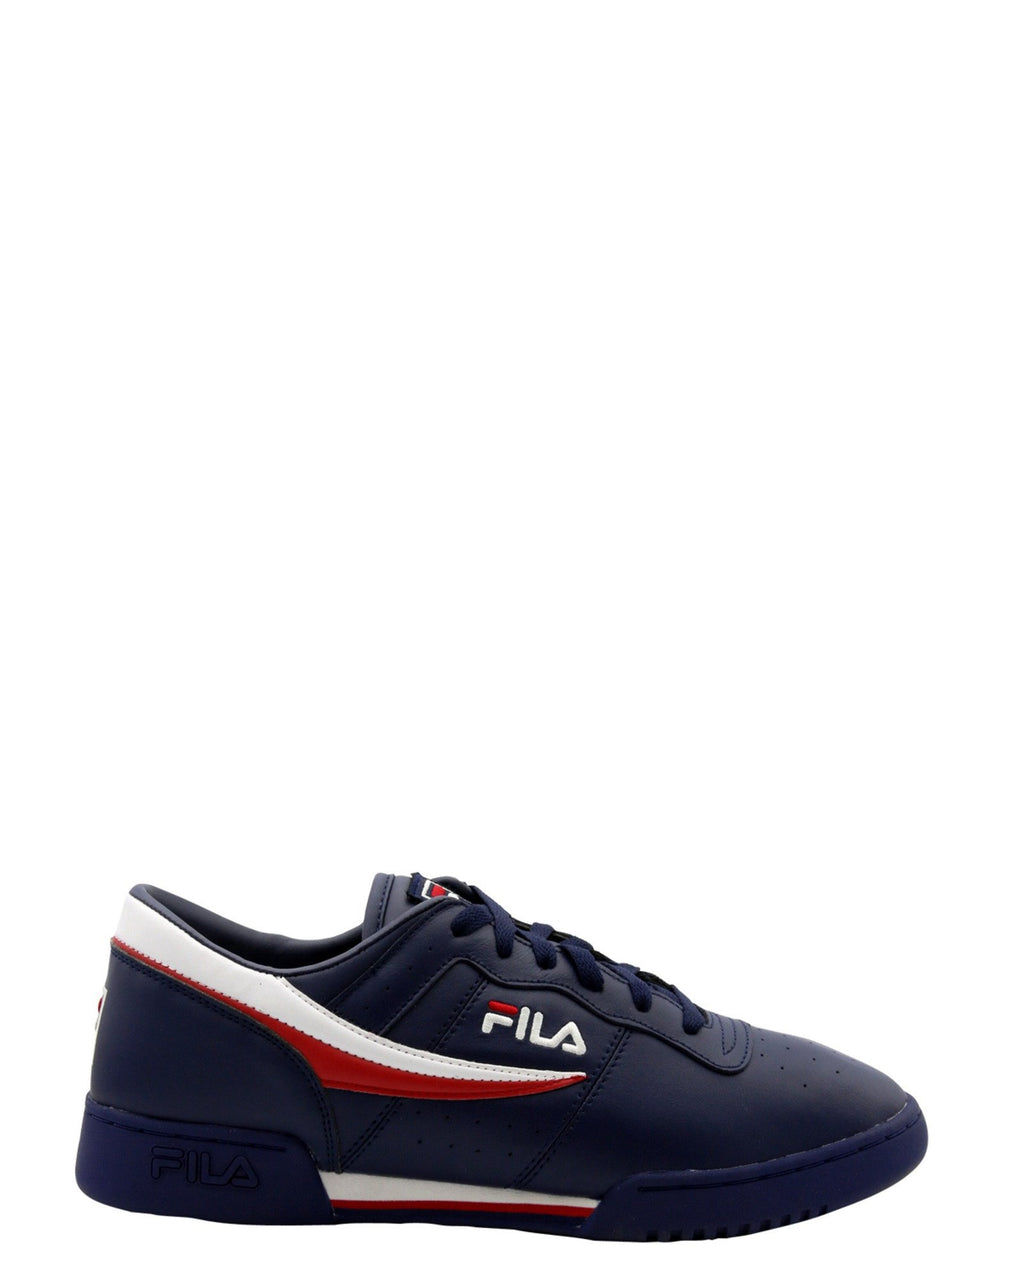 Men's Original Fitness Lea Classic Sneakers